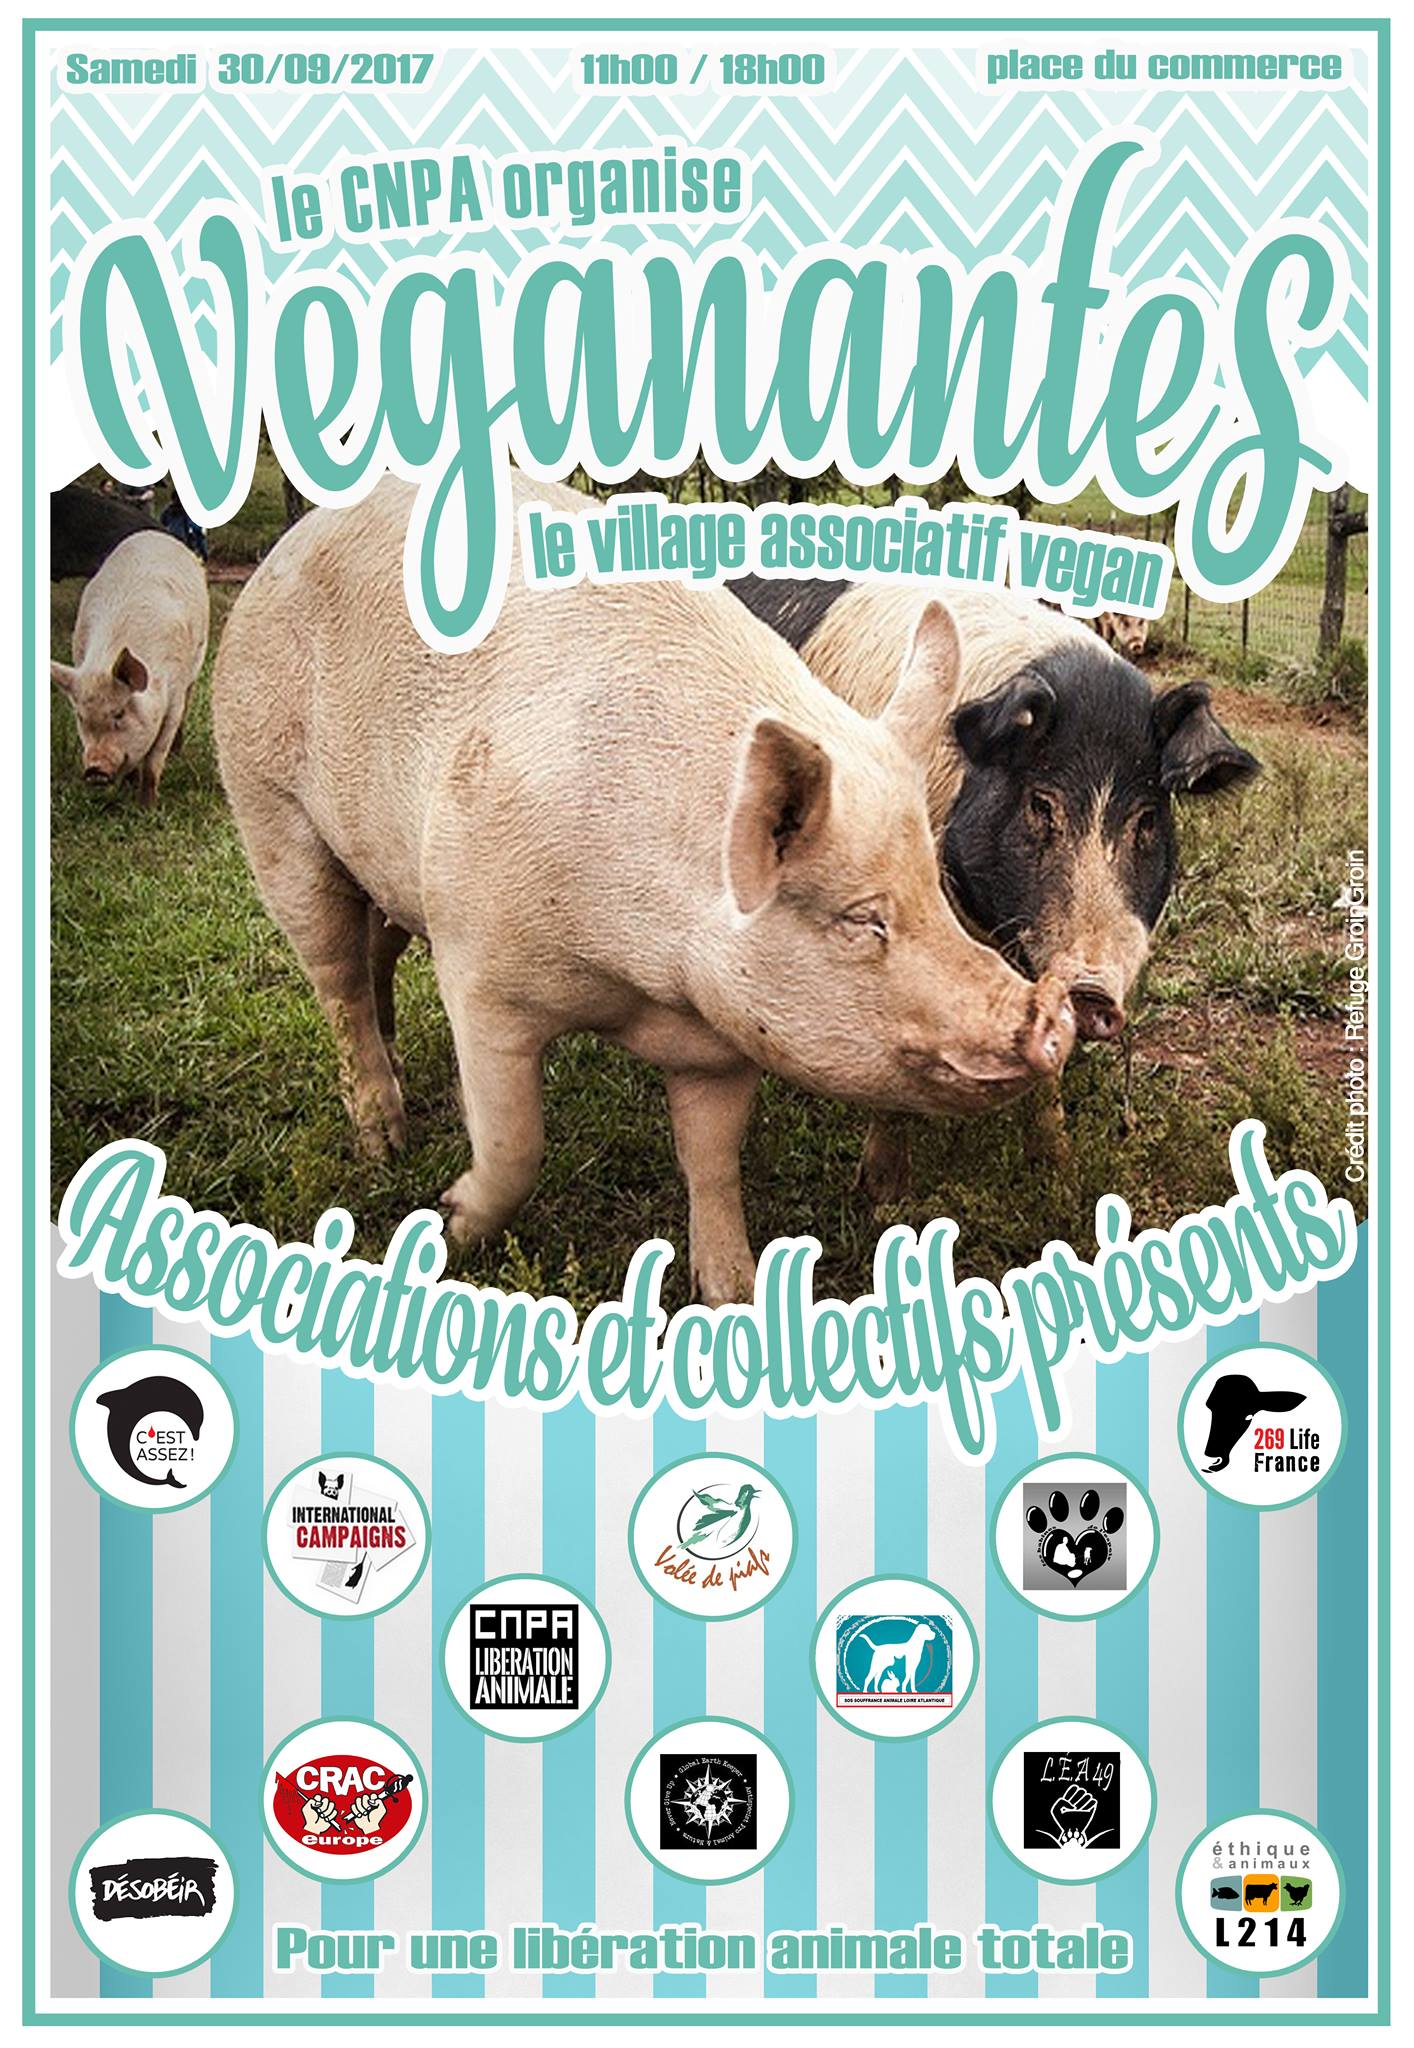 Rencontre vegan